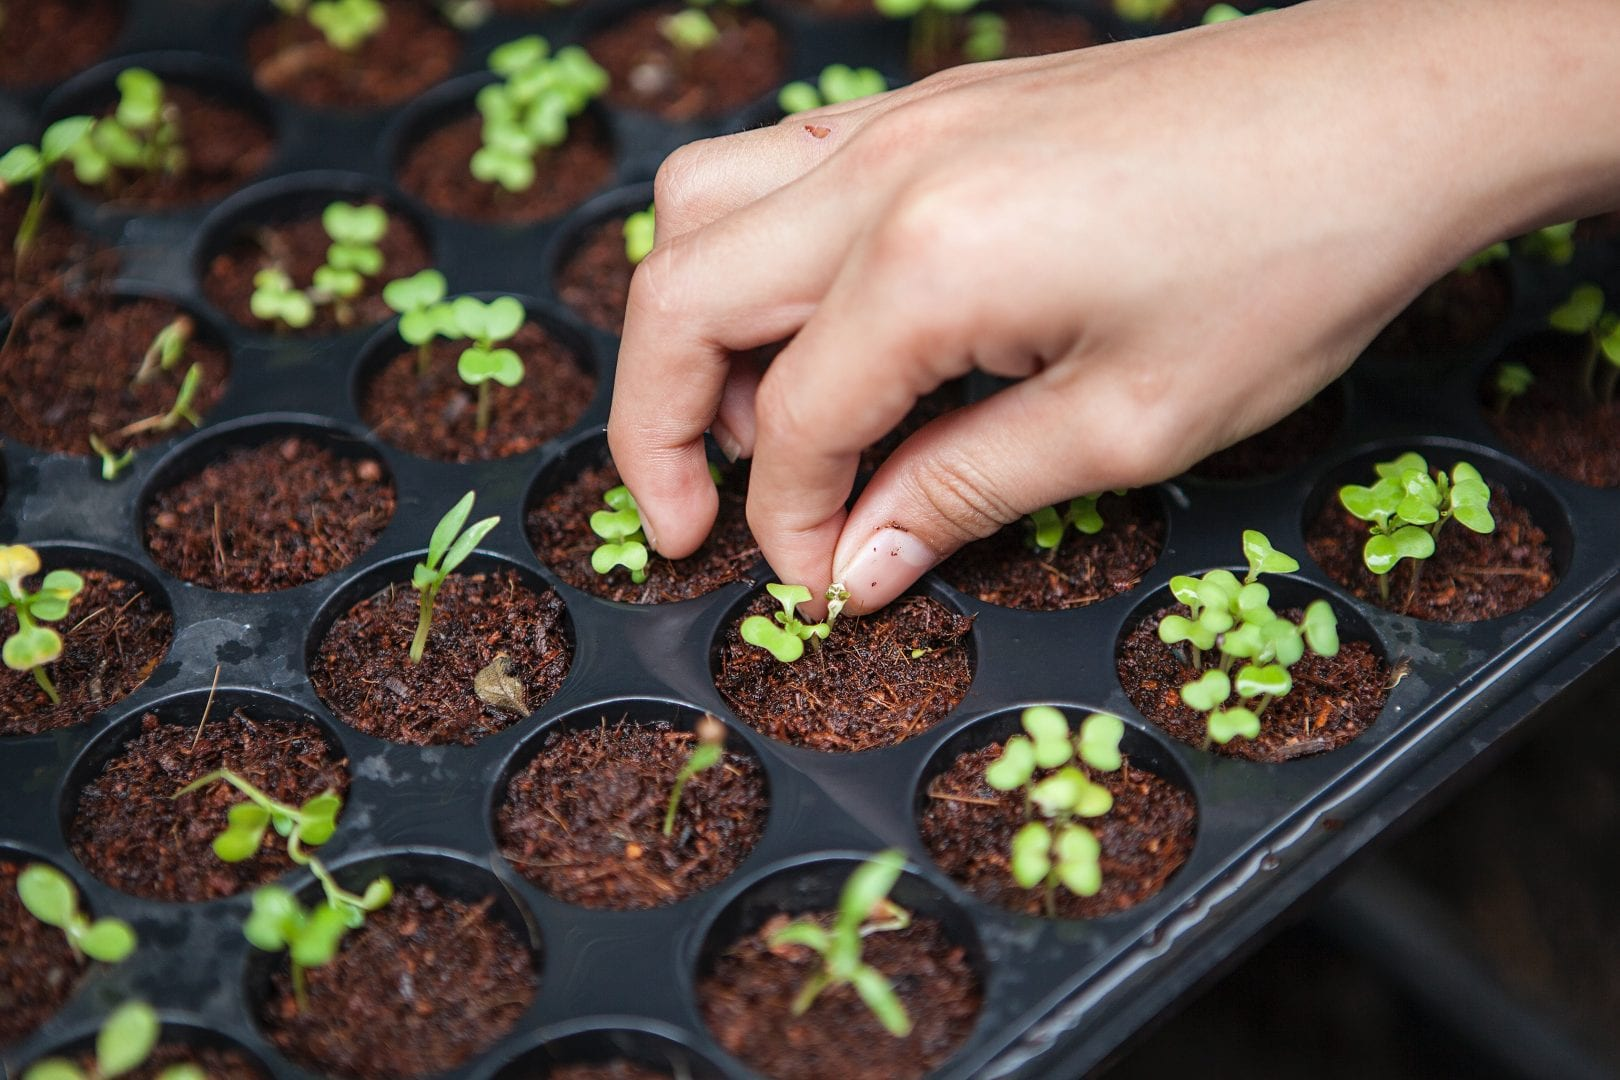 a hand touching one of many small plant seedlings